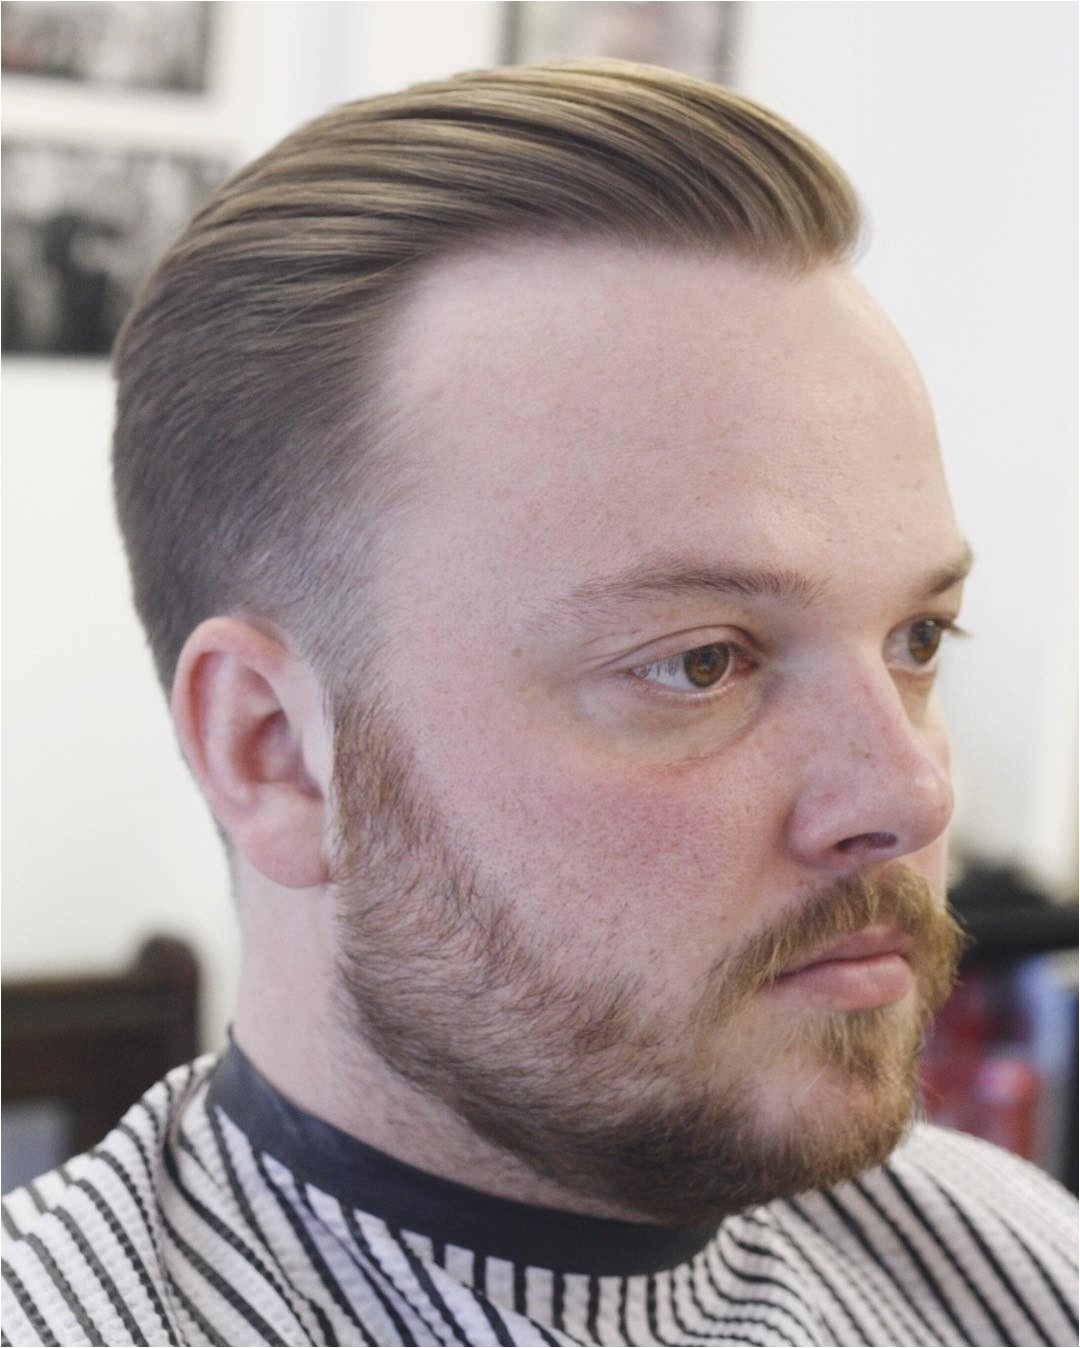 Best Mens Haircut for Receding Hairline Receding Hairline Hairstyles